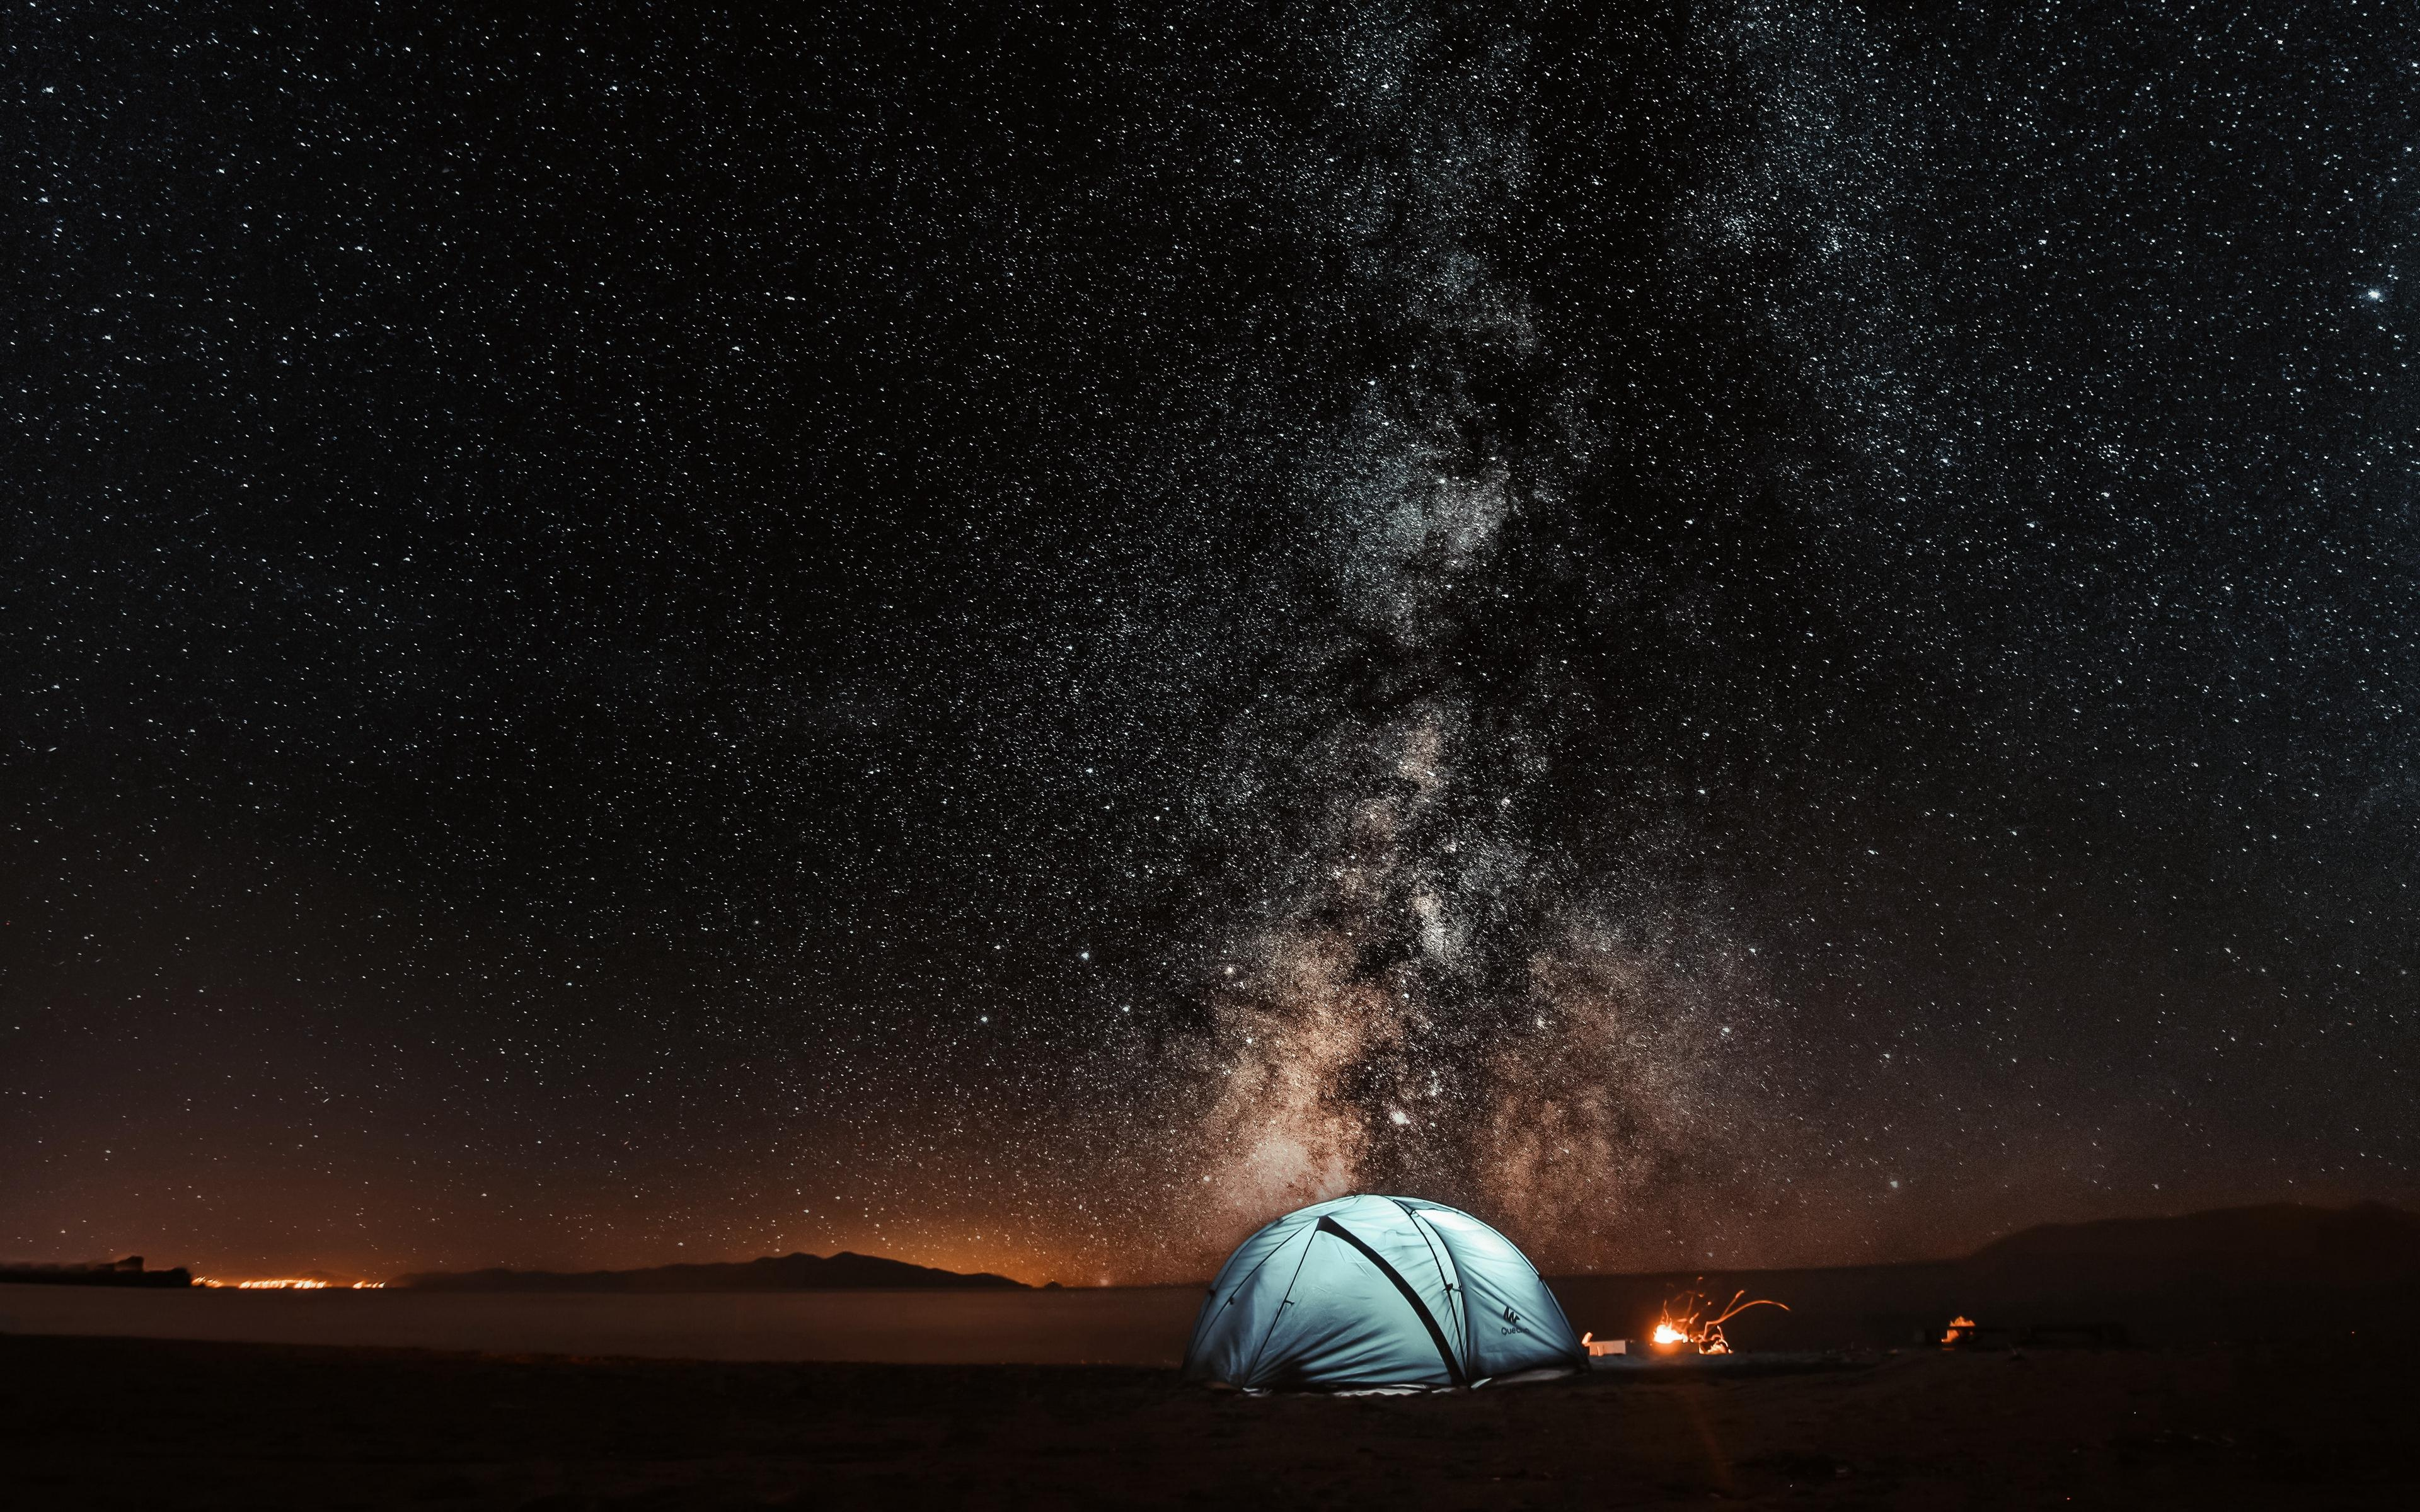 Download wallpapers 3840x2400 tent, starry sky, night, tourism 4k